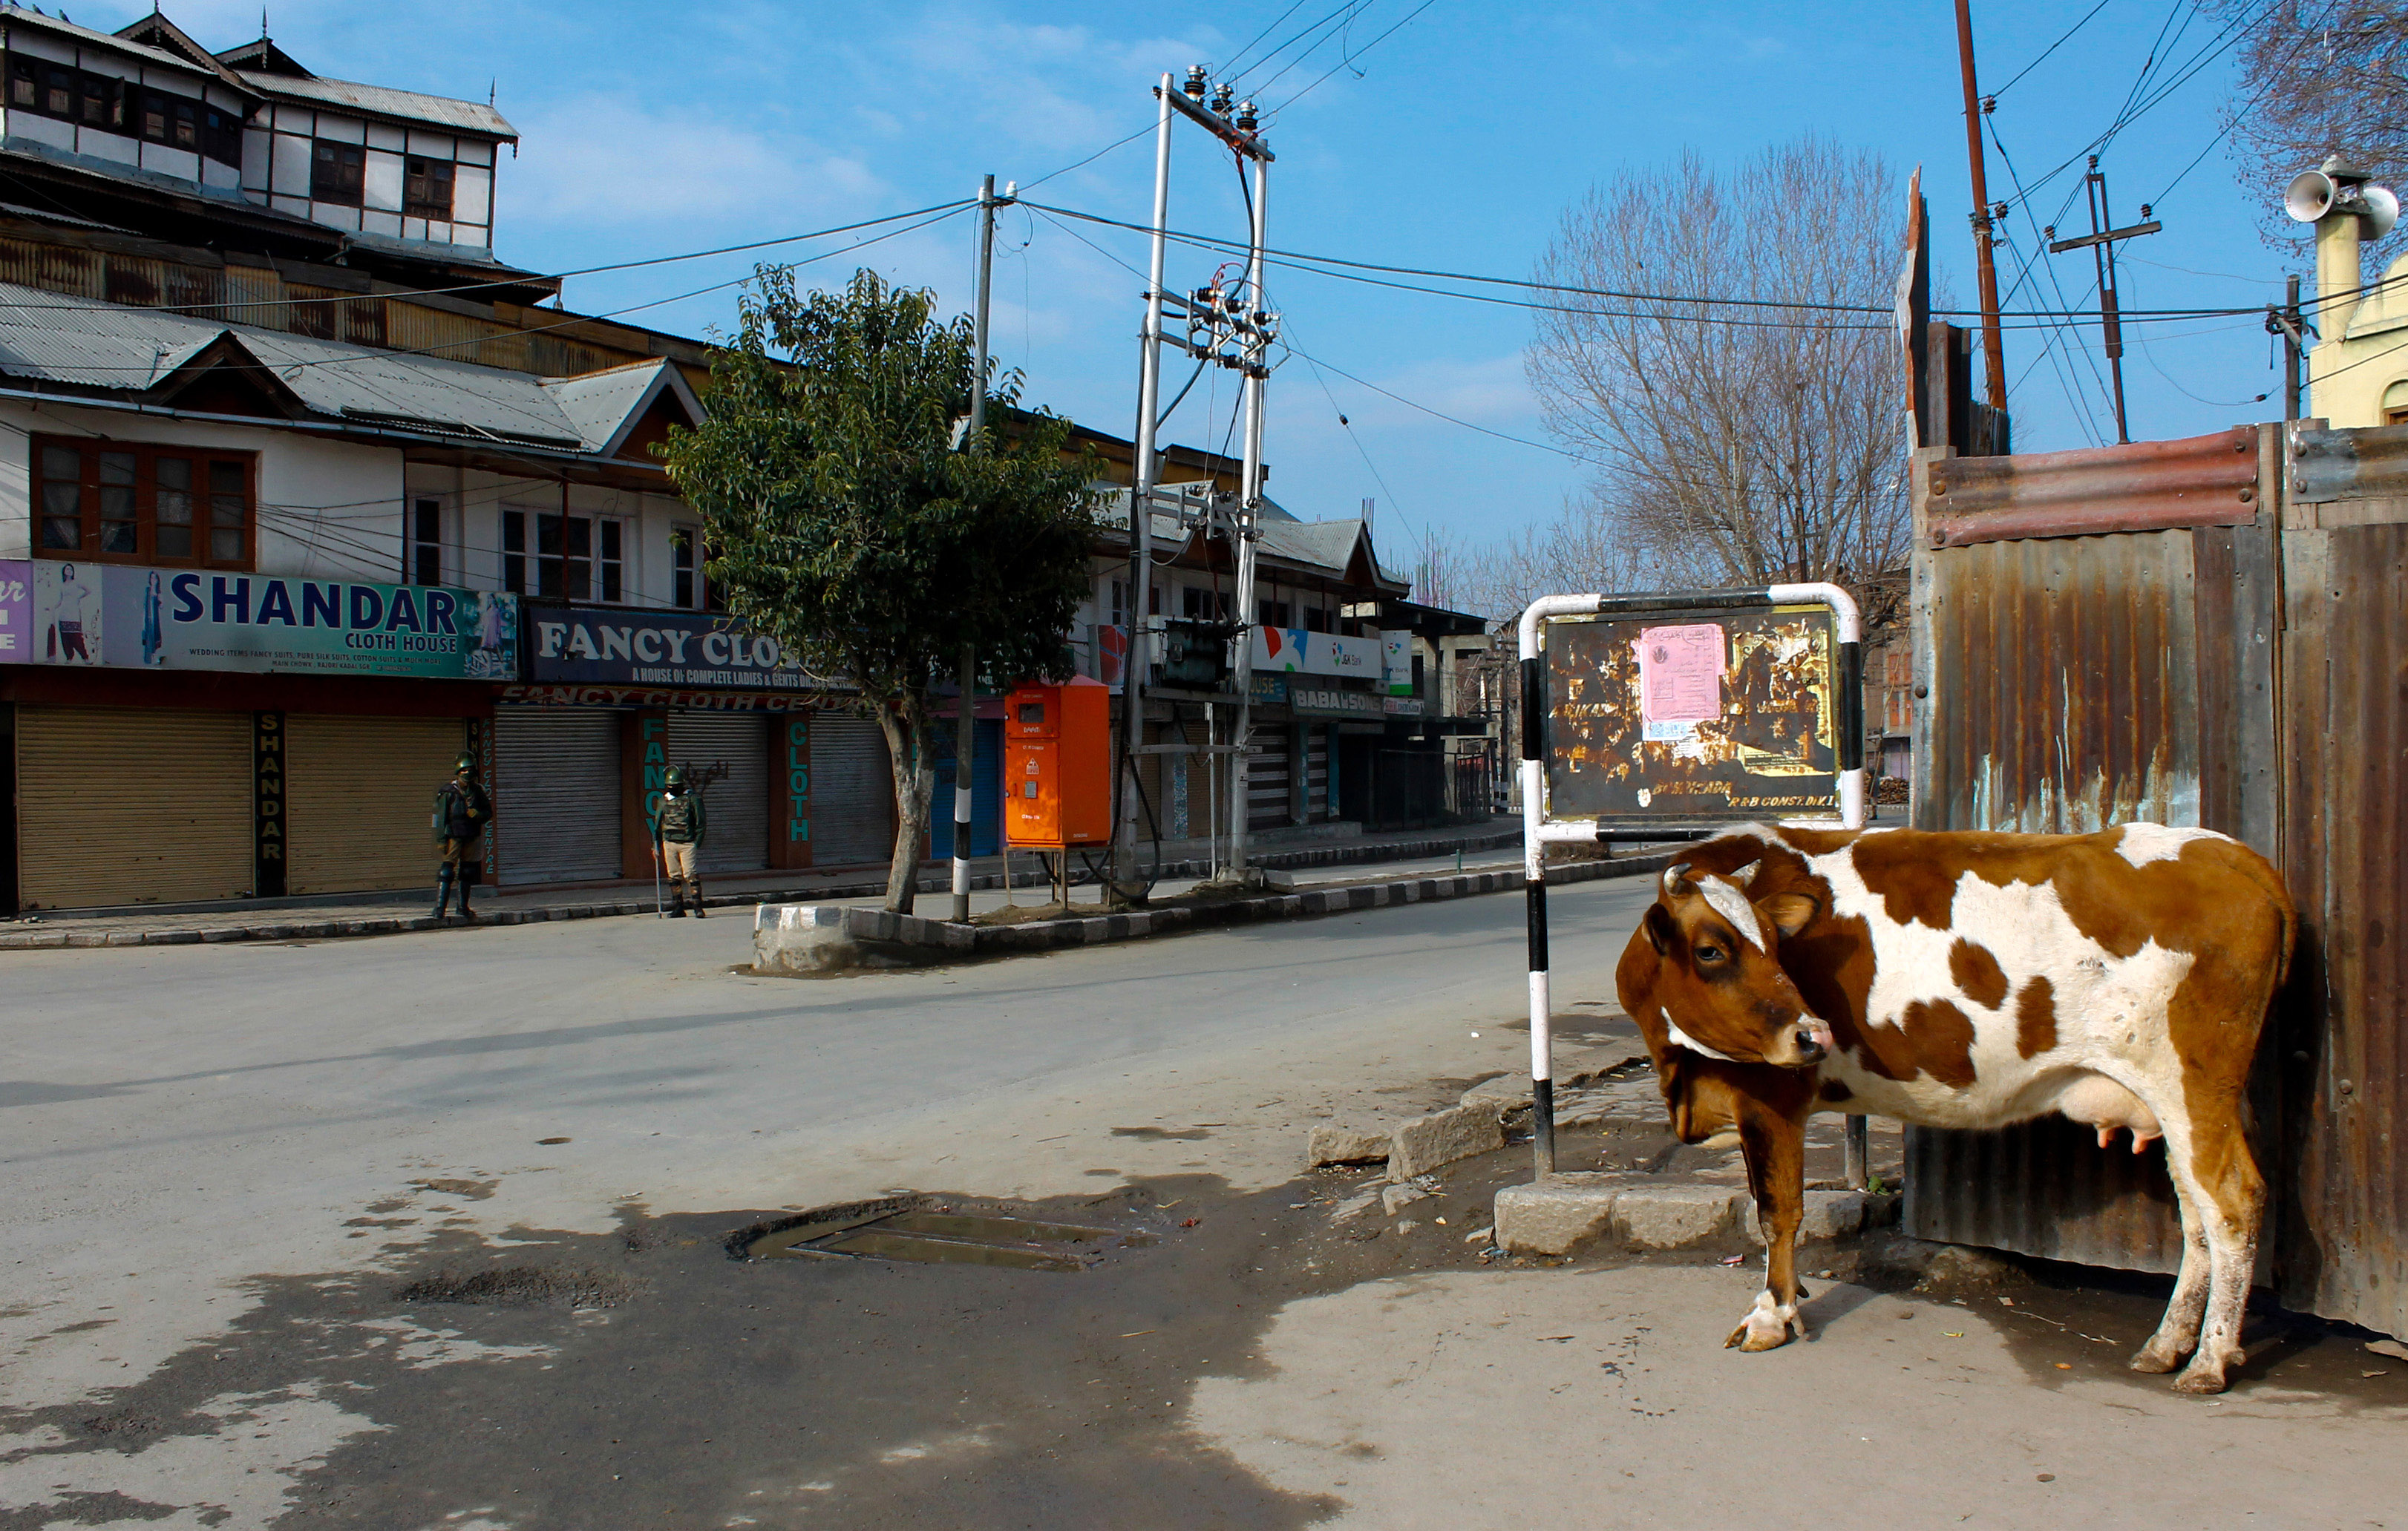 Indian paramilitary soldiers stand guard as a stray cow look around at the Old City during restrictions on the second death anniversary of Afzal Guru on February 09, 2015 in Srinagar, the summer capital of Indian Administered Kashmir, India.